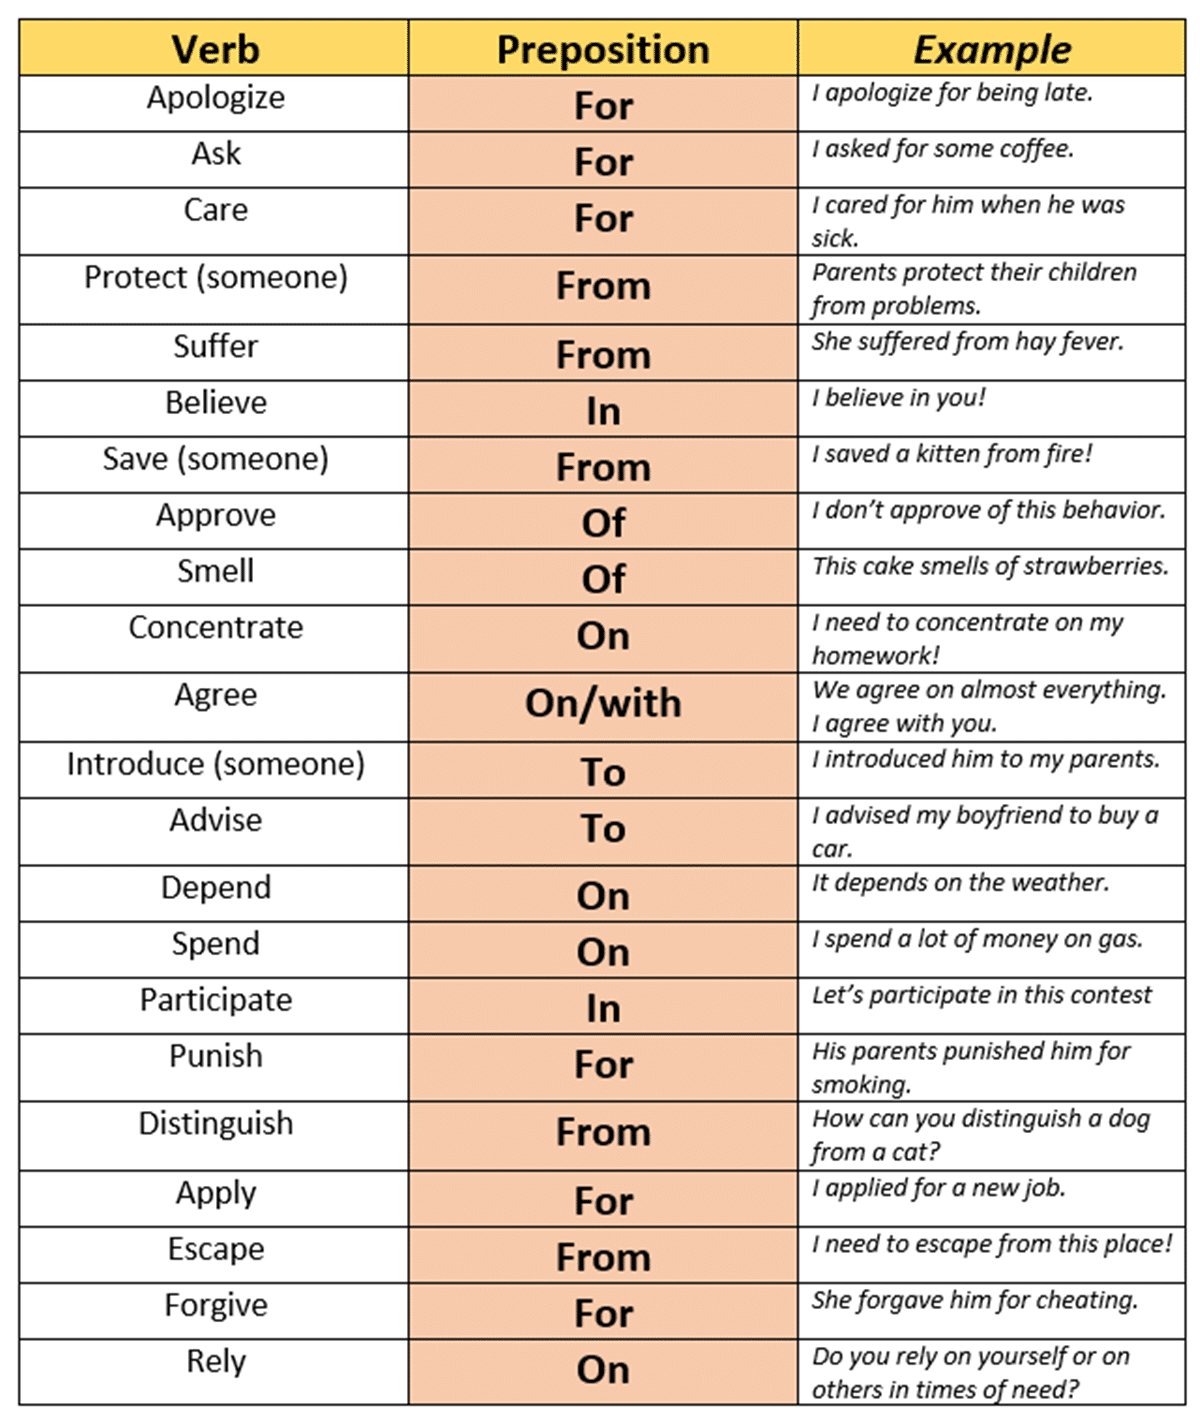 Verbs and prepositions - some verbs are usually followed by